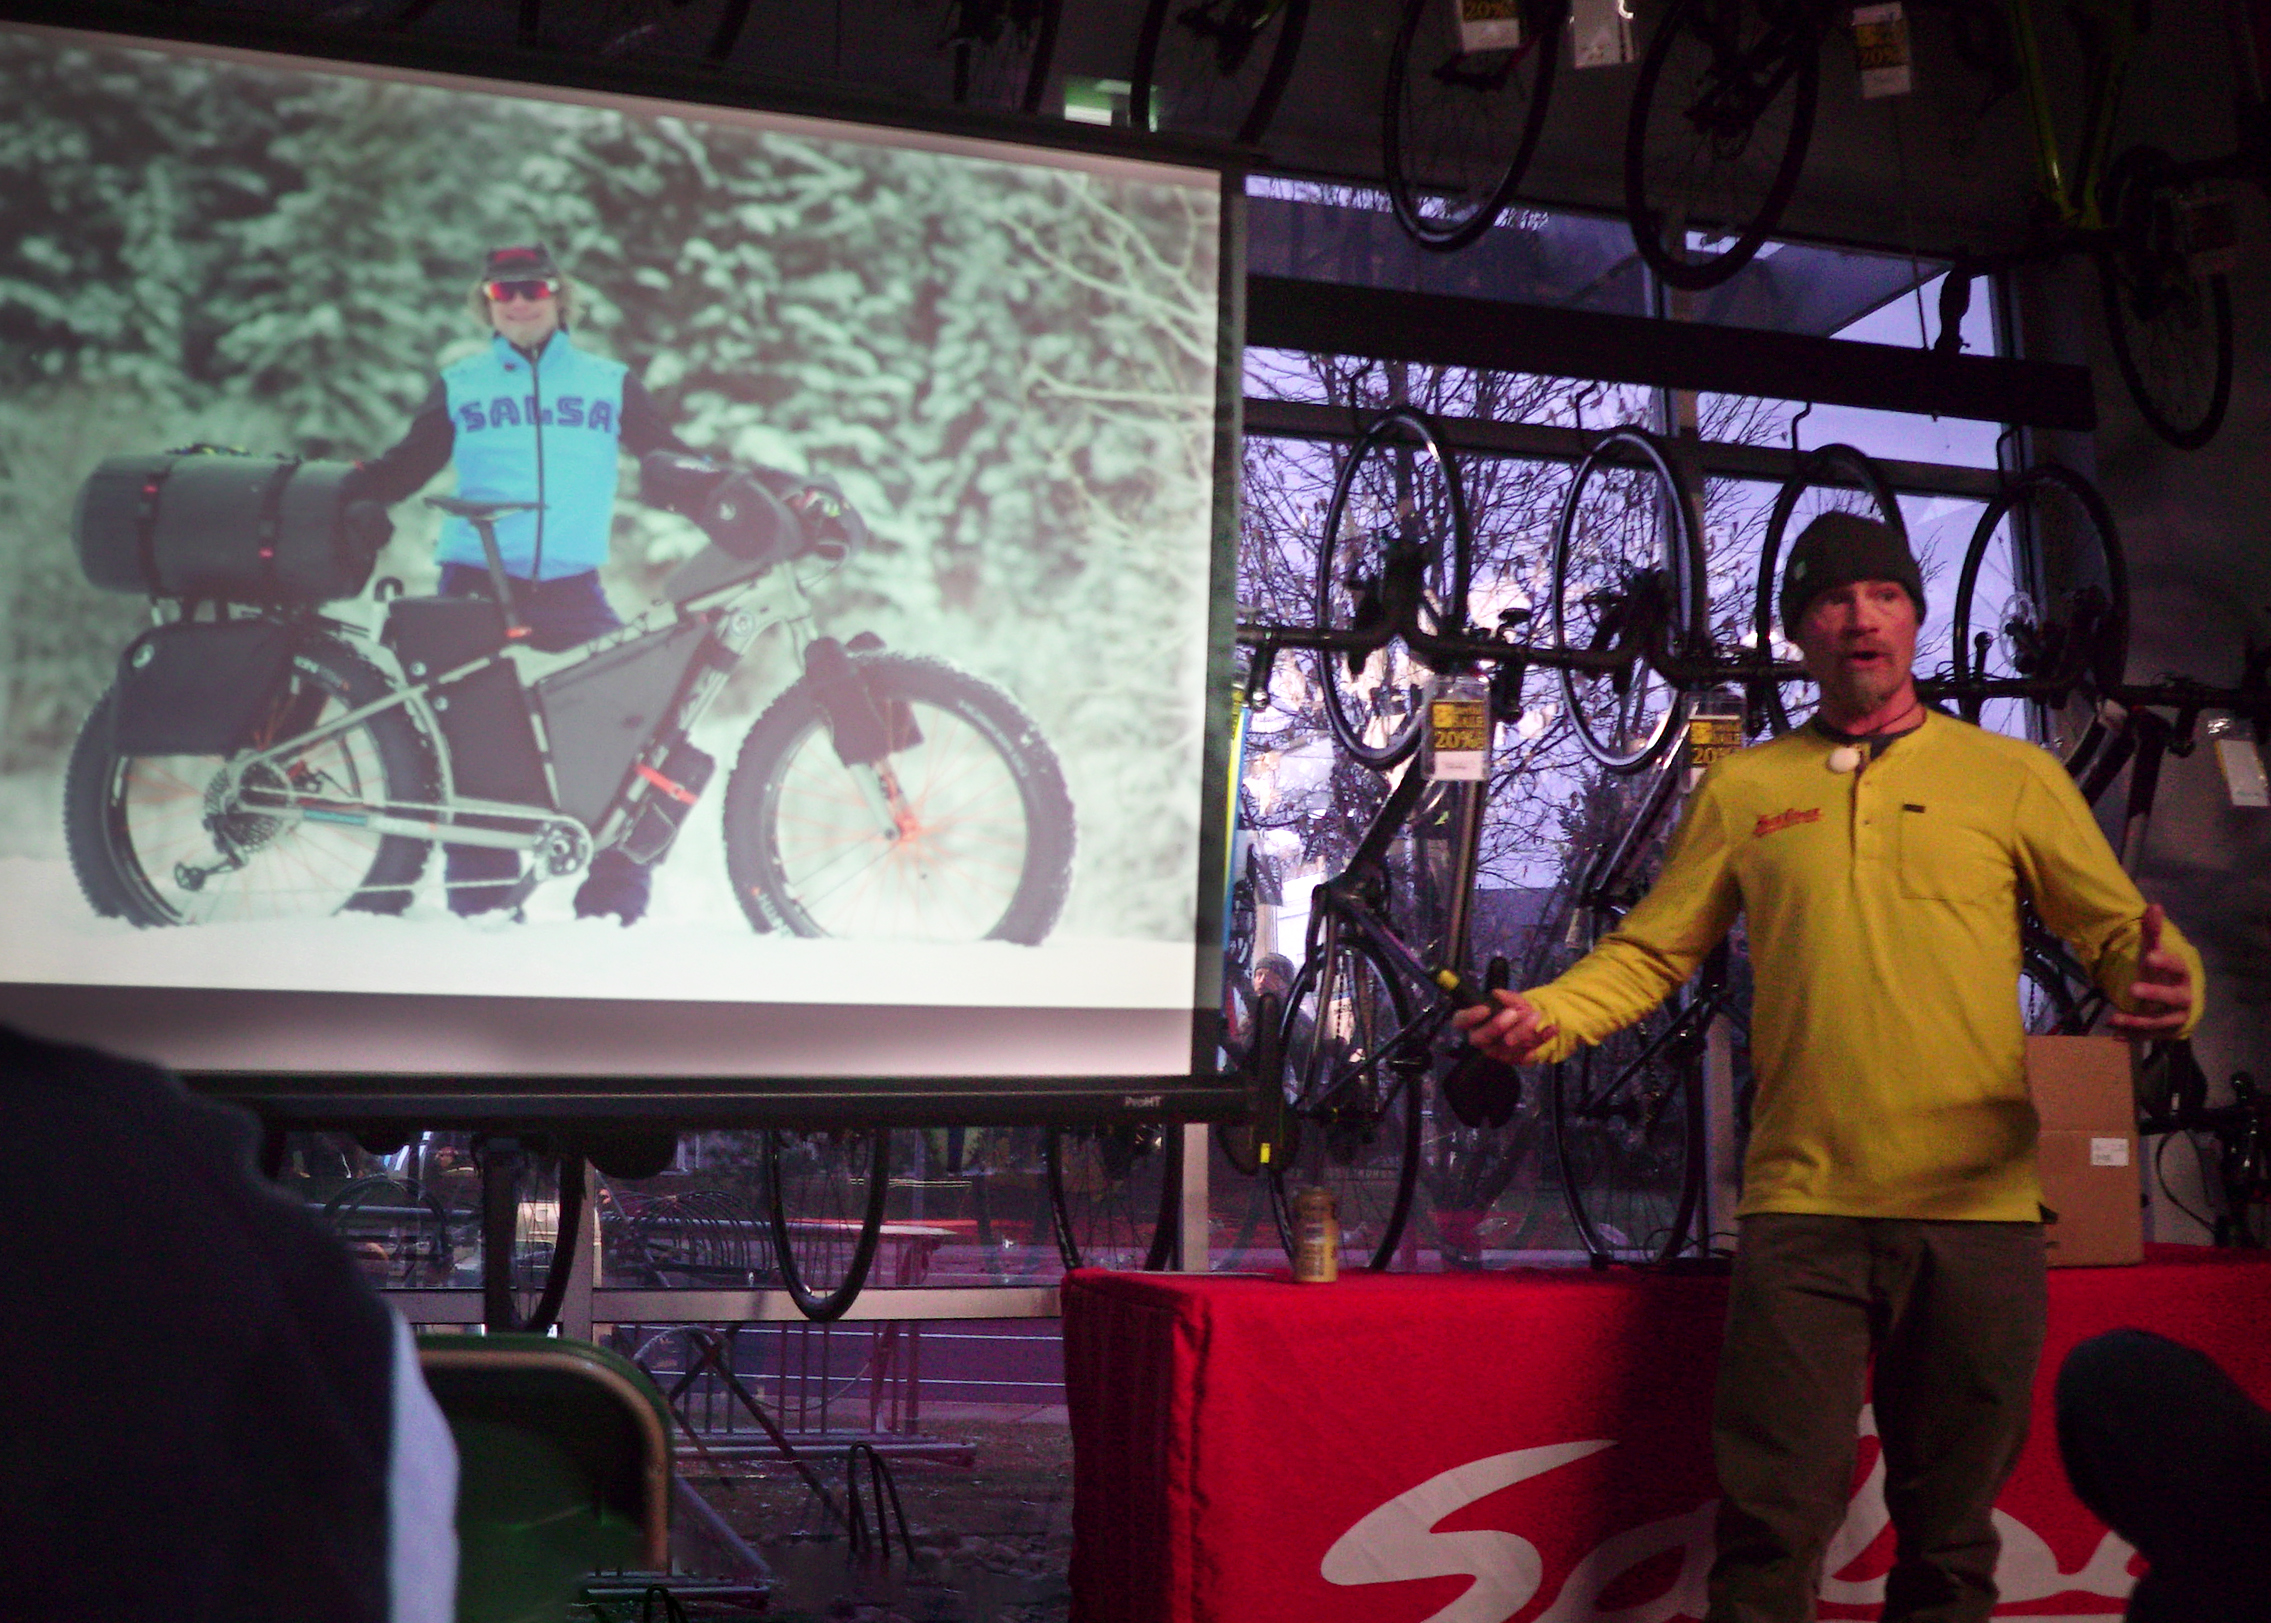 Jay Petervary talks about the major advances in bike technology that he has benefited from personally while racing the Iditarod Trail Invitational, the most recent of which being the Blackborow - a cargo bike with an extended rear triangle.